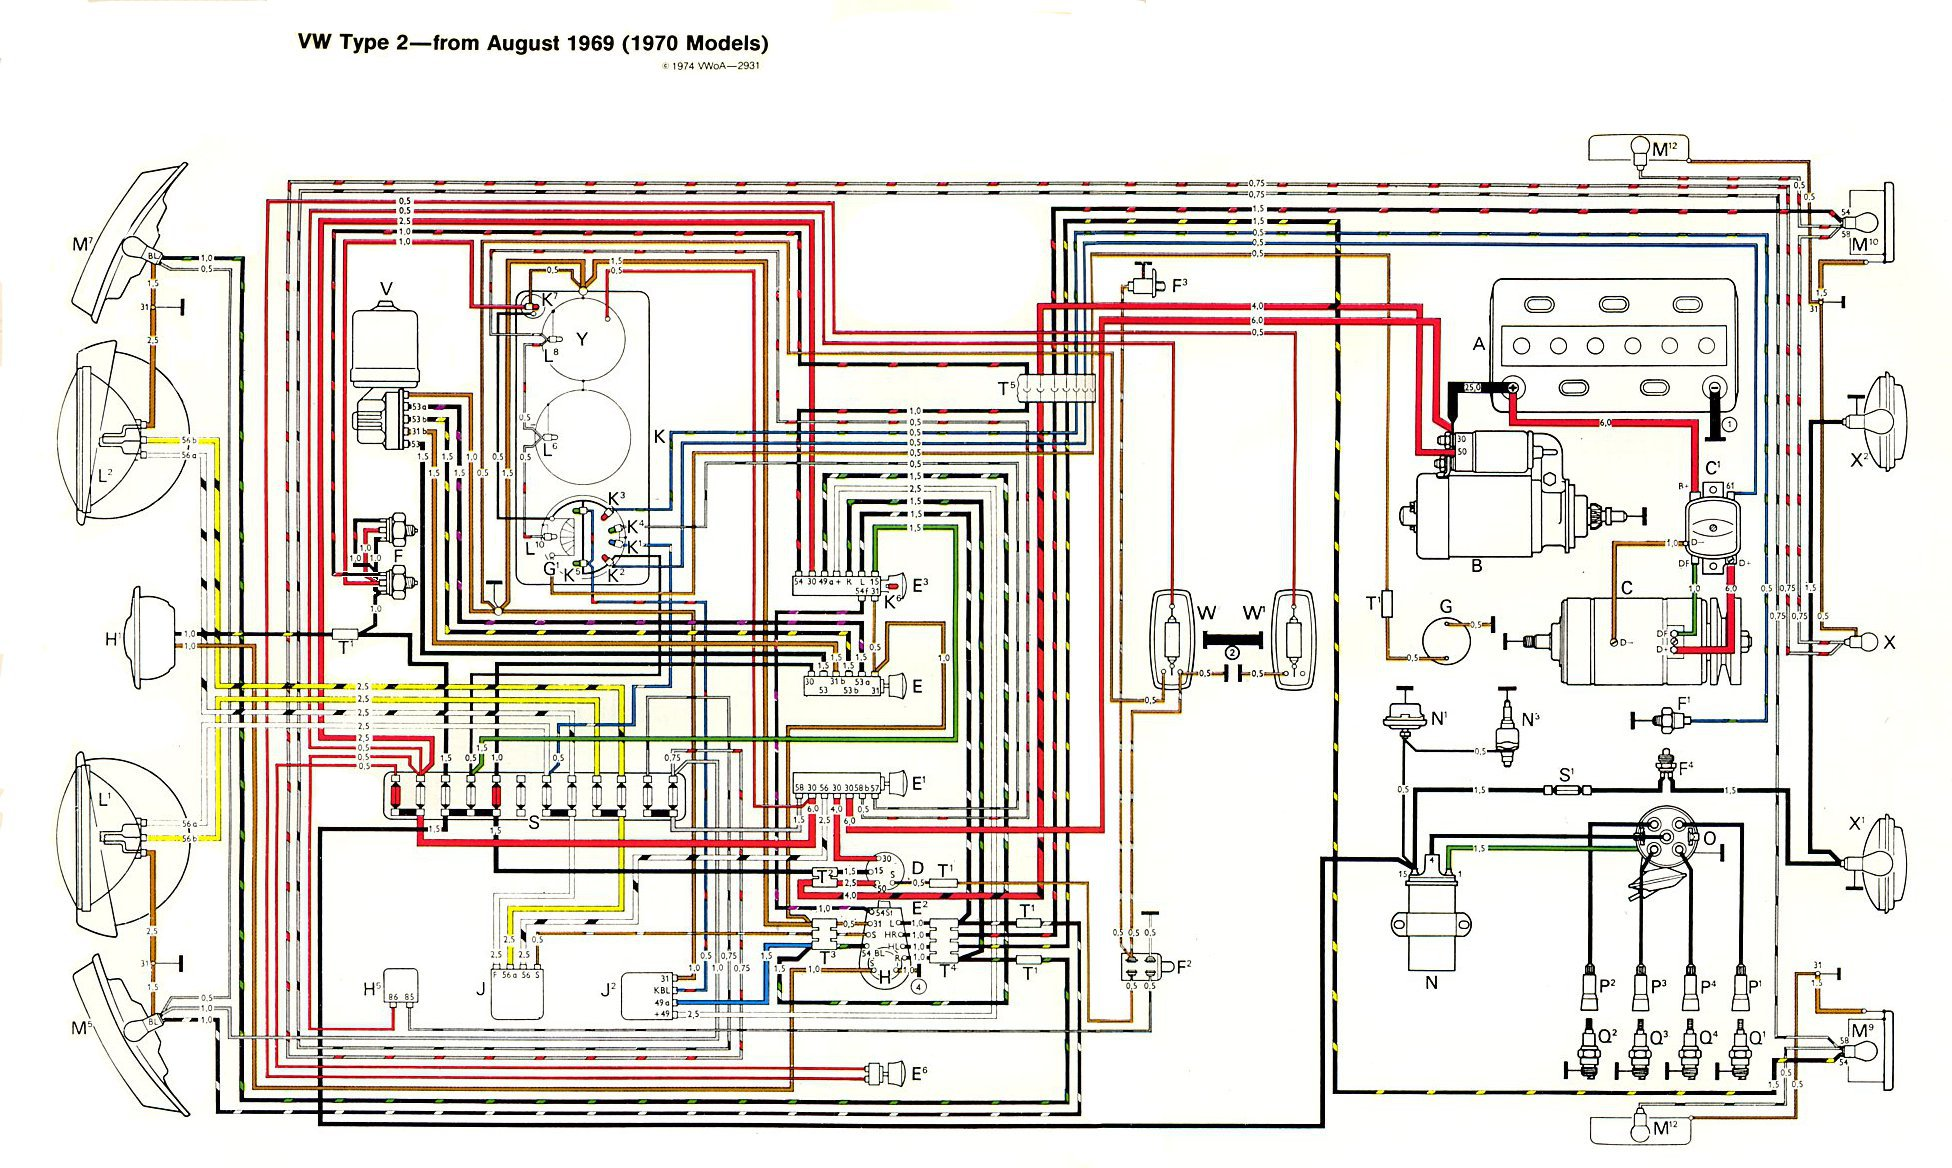 baybus_70 thesamba com type 2 wiring diagrams Wiring Harness Diagram at pacquiaovsvargaslive.co